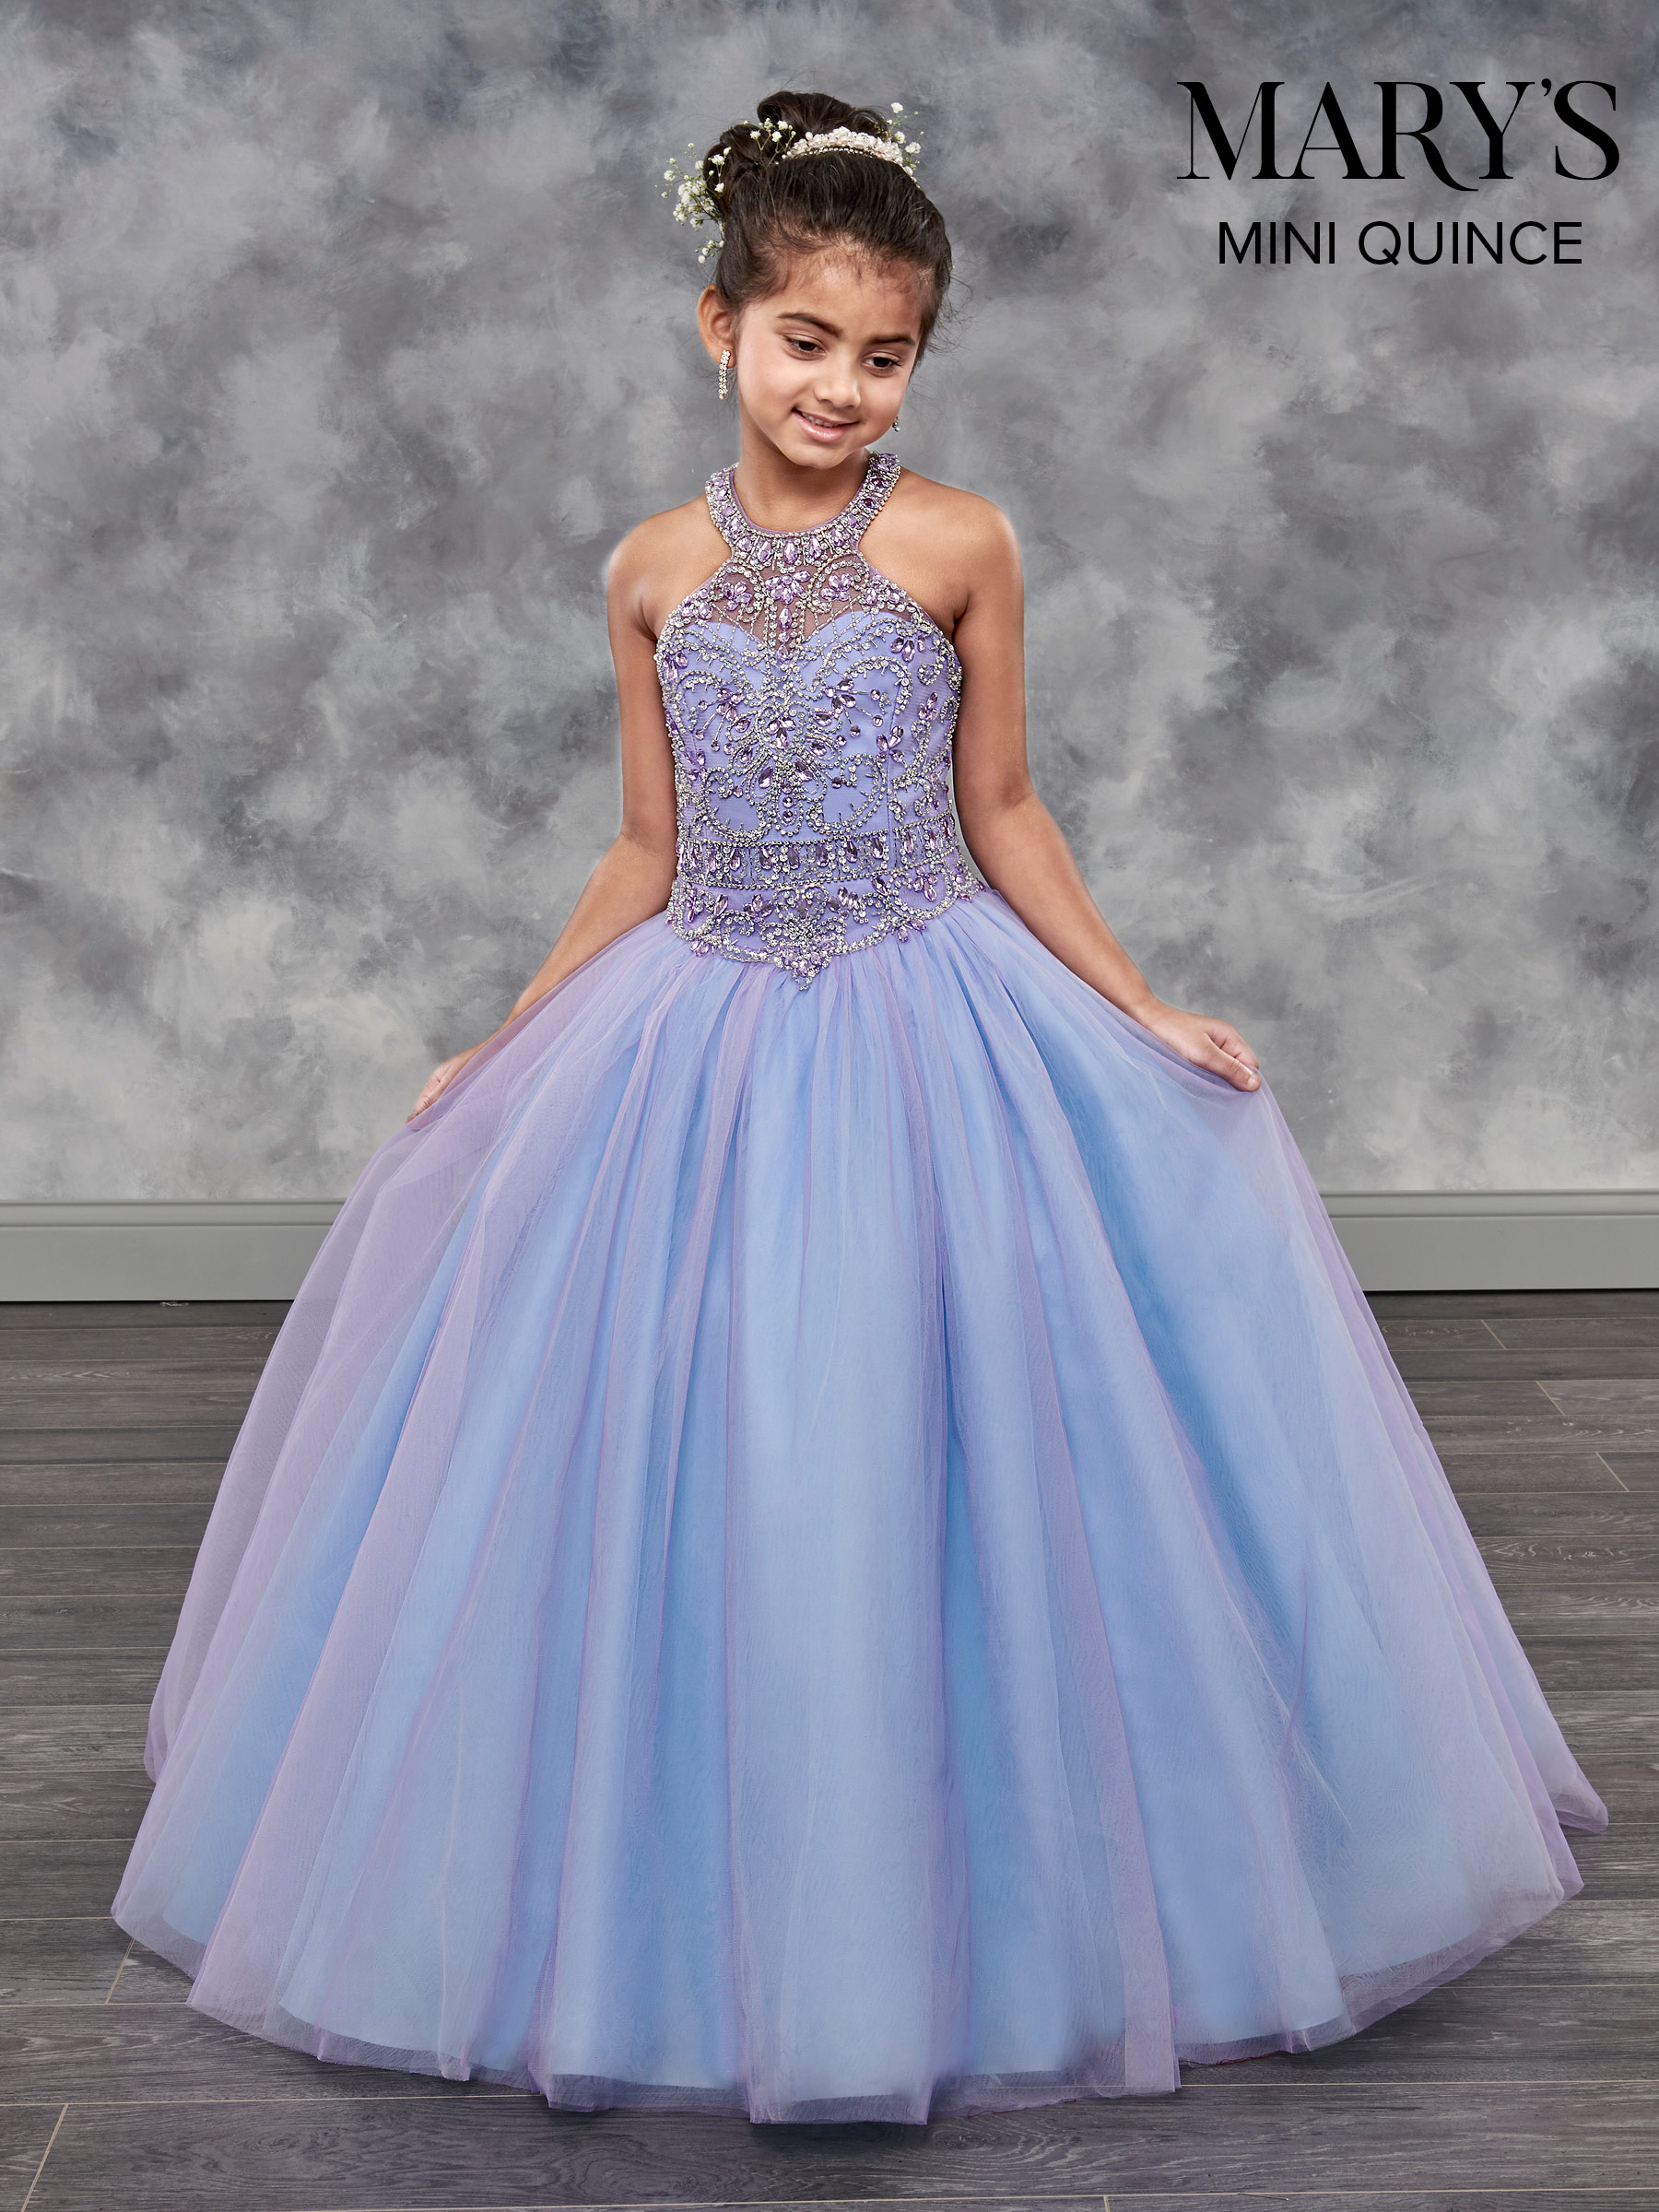 Little Quince Dresses | Mini Quince | Style - MQ4001